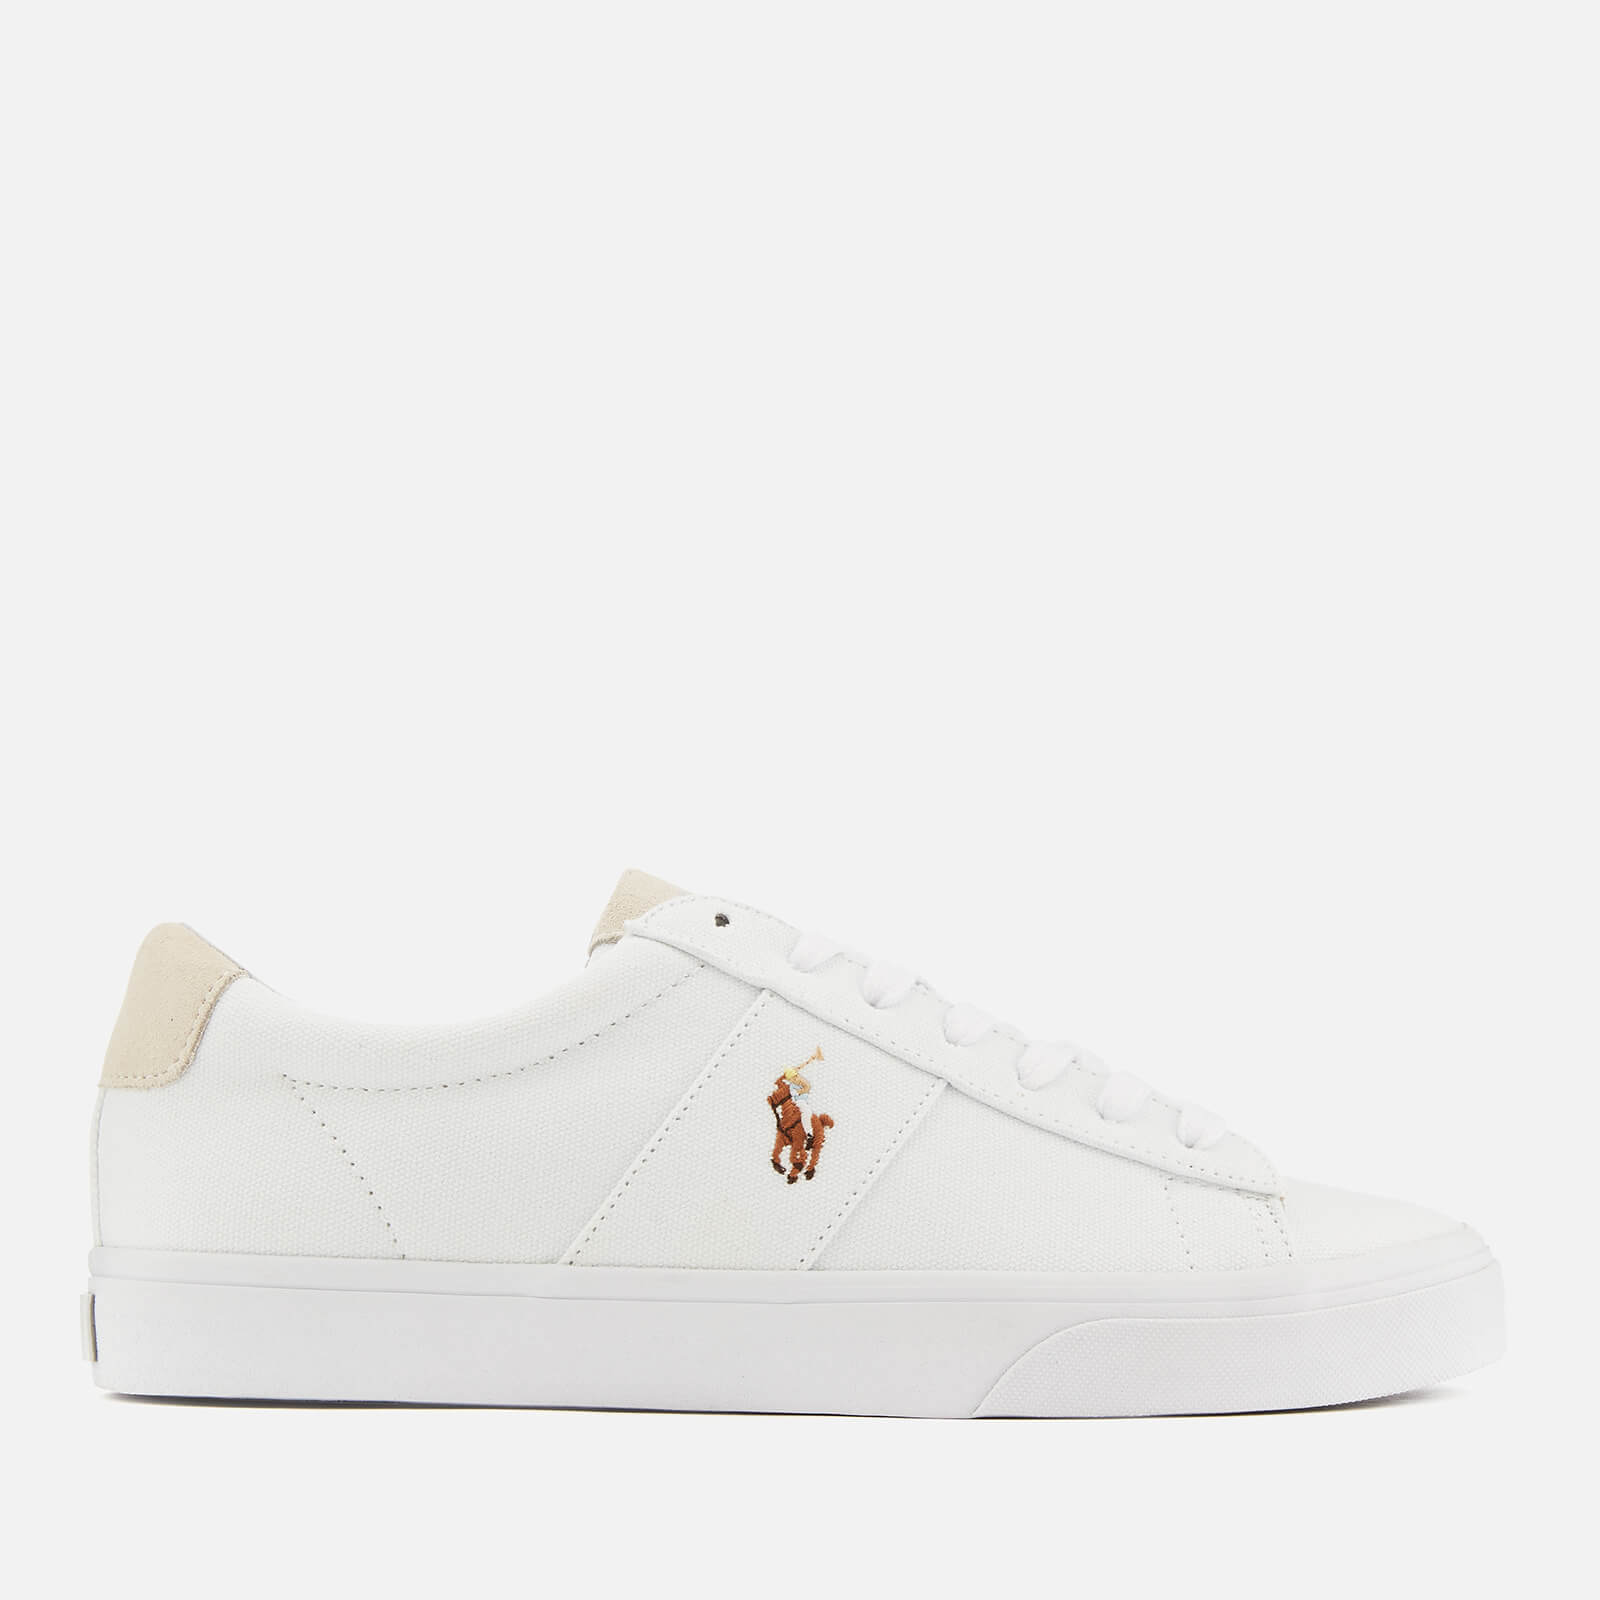 Polo Ralph Lauren Men's Sayer Canvas Low Top Trainers - White - UK 10 - White